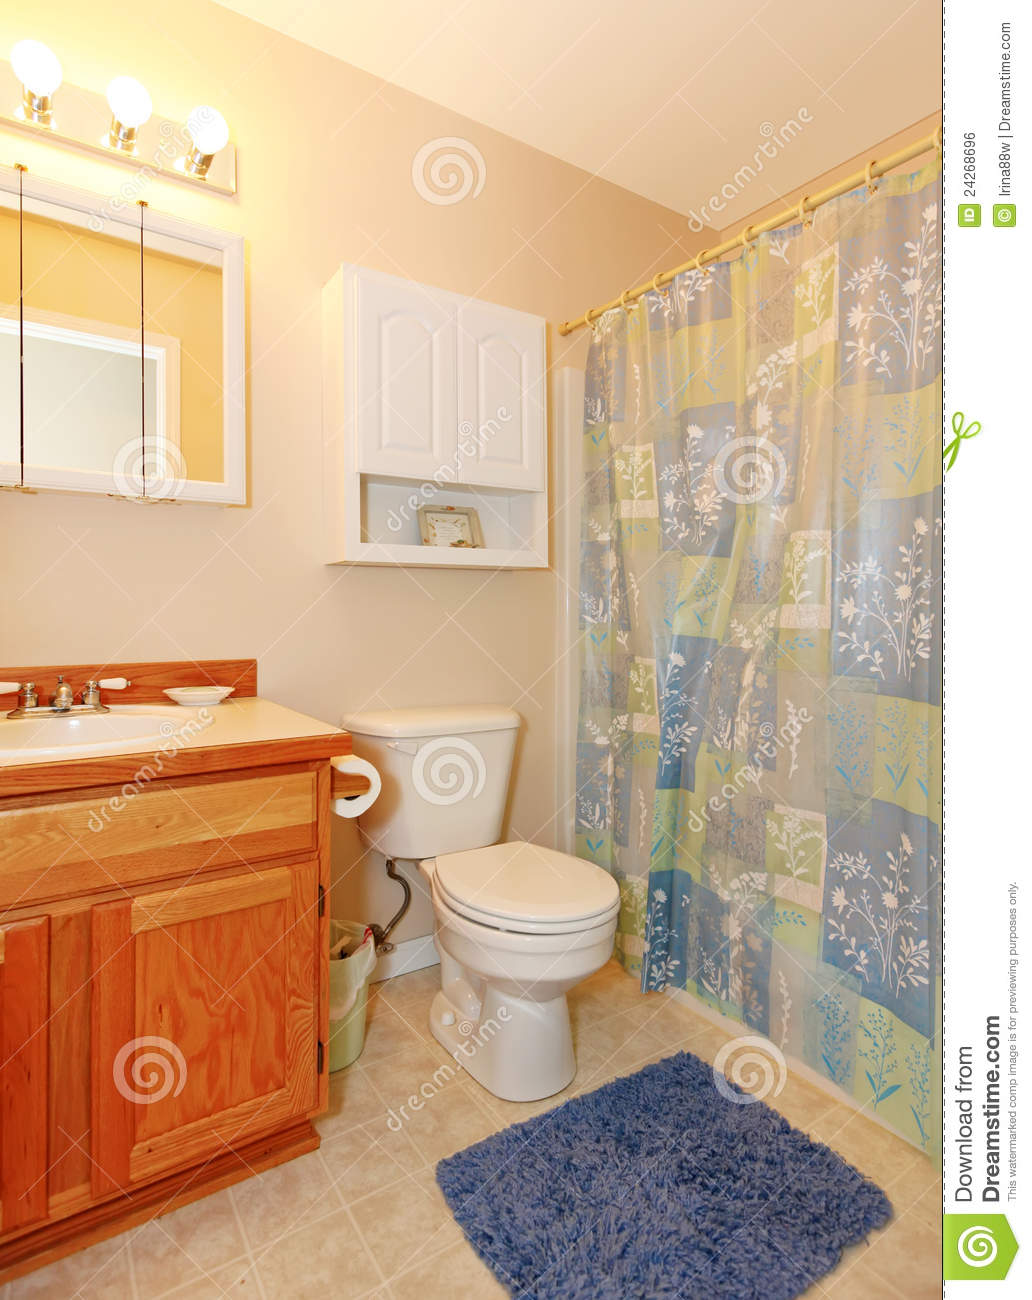 Simple small bathroom with purple rug royalty free stock for Simple small bathroom